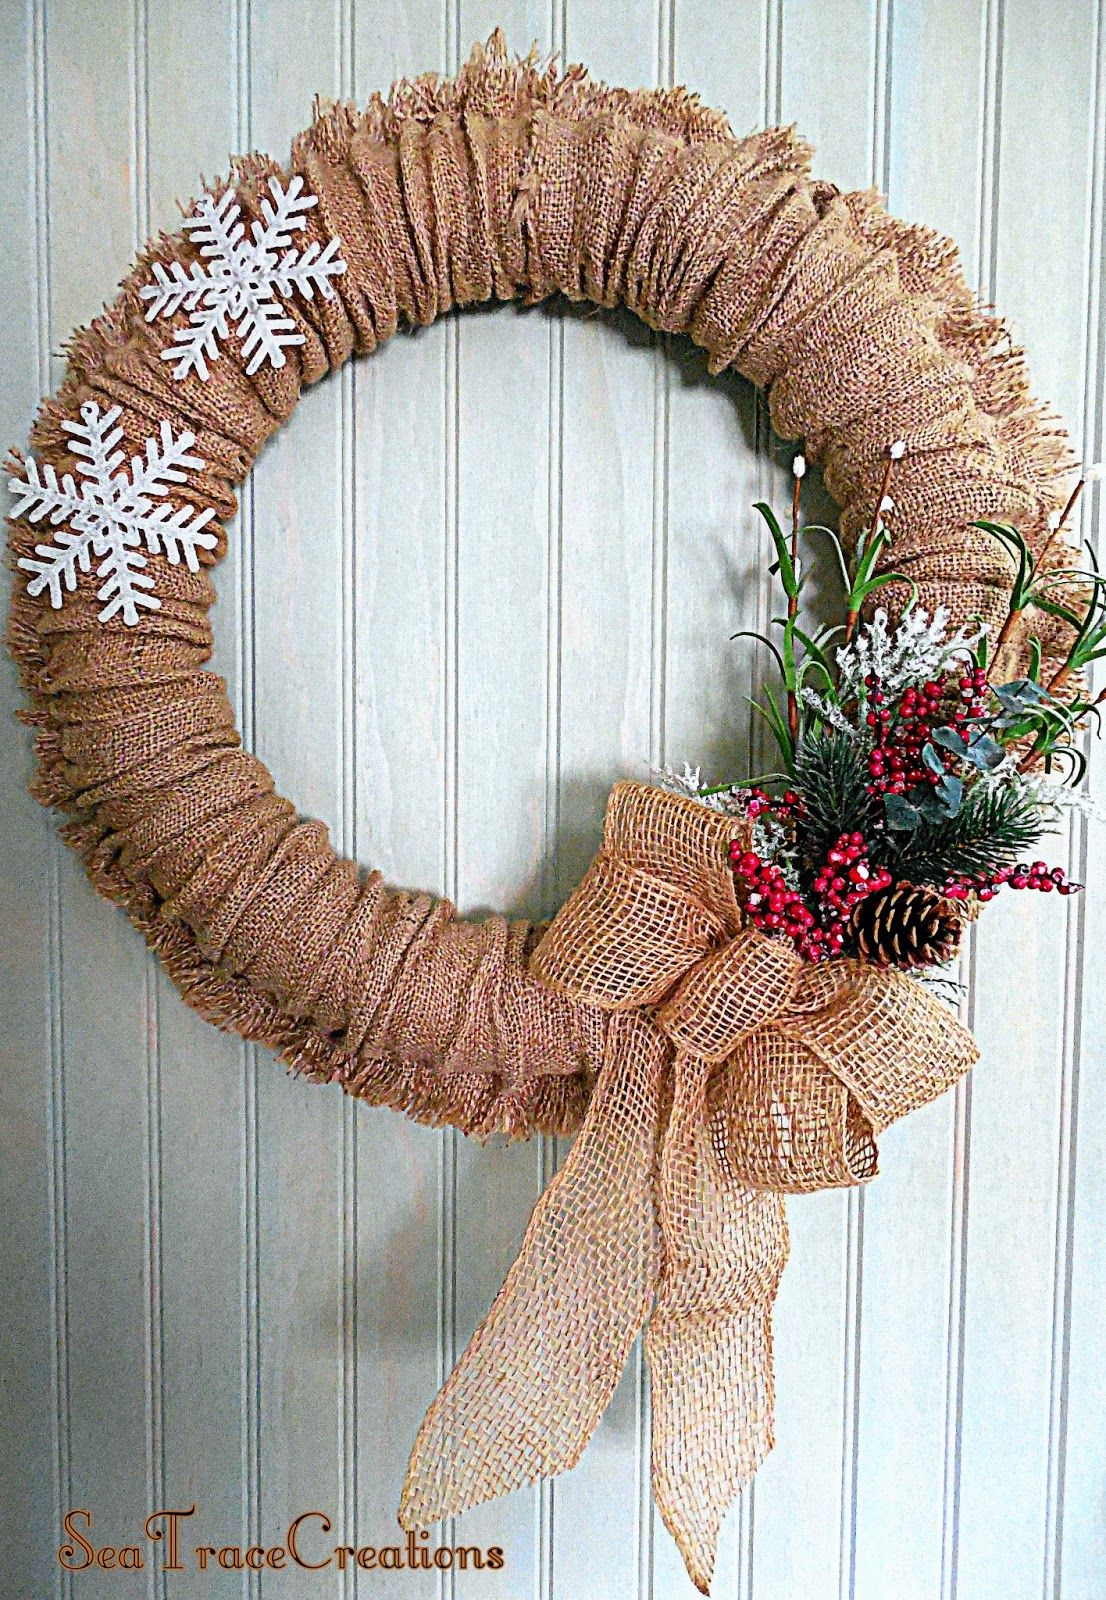 Burlap Pool Noodle Wreath made by Sea Trace Creations. It is designed to be used year round as the flower boutineer and snowflakes are temporarily pinned onto the wreath. Both can be opted out in the Spring for seasonal flowers and maybe some butterflies.